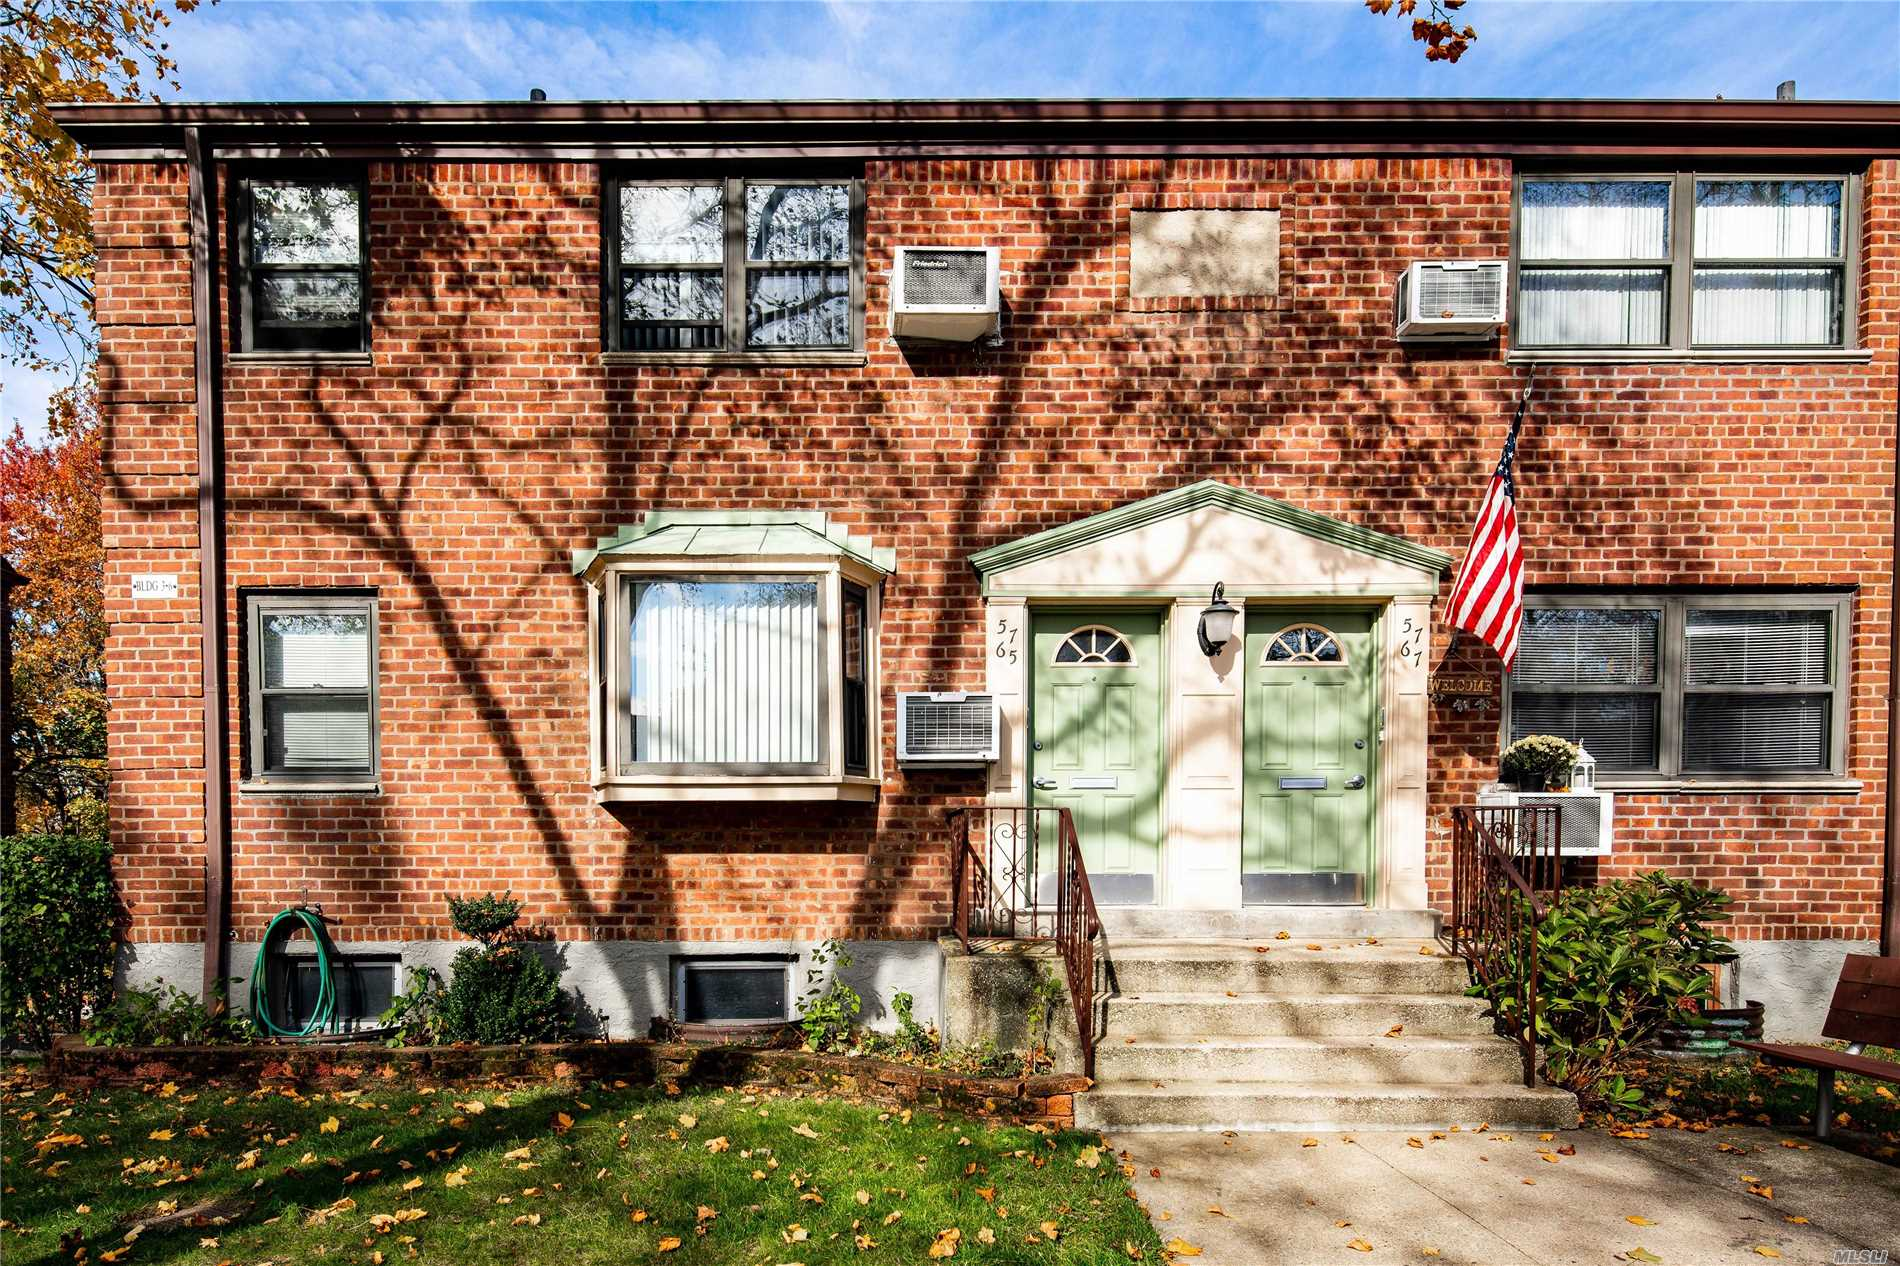 1 Bedroom 1 Bathroom Corner Unit On Tree Lined Street. Light Streams In Through Northern, Southern, And Western Facing Windows. L Shaped Living Room And Dining Room, Spacious Bedroom, And Full Bathroom. Stand Up Attic For Additional Storage. Maintenance Includes Property Taxes, Heating Costs, Electric, Cooking Gas, Water & Heating Of Water. Needs New Kitchen, Bathroom Below Average, Has Old Washer, Most Place Stackable W/D In Alcove Near Bathroom